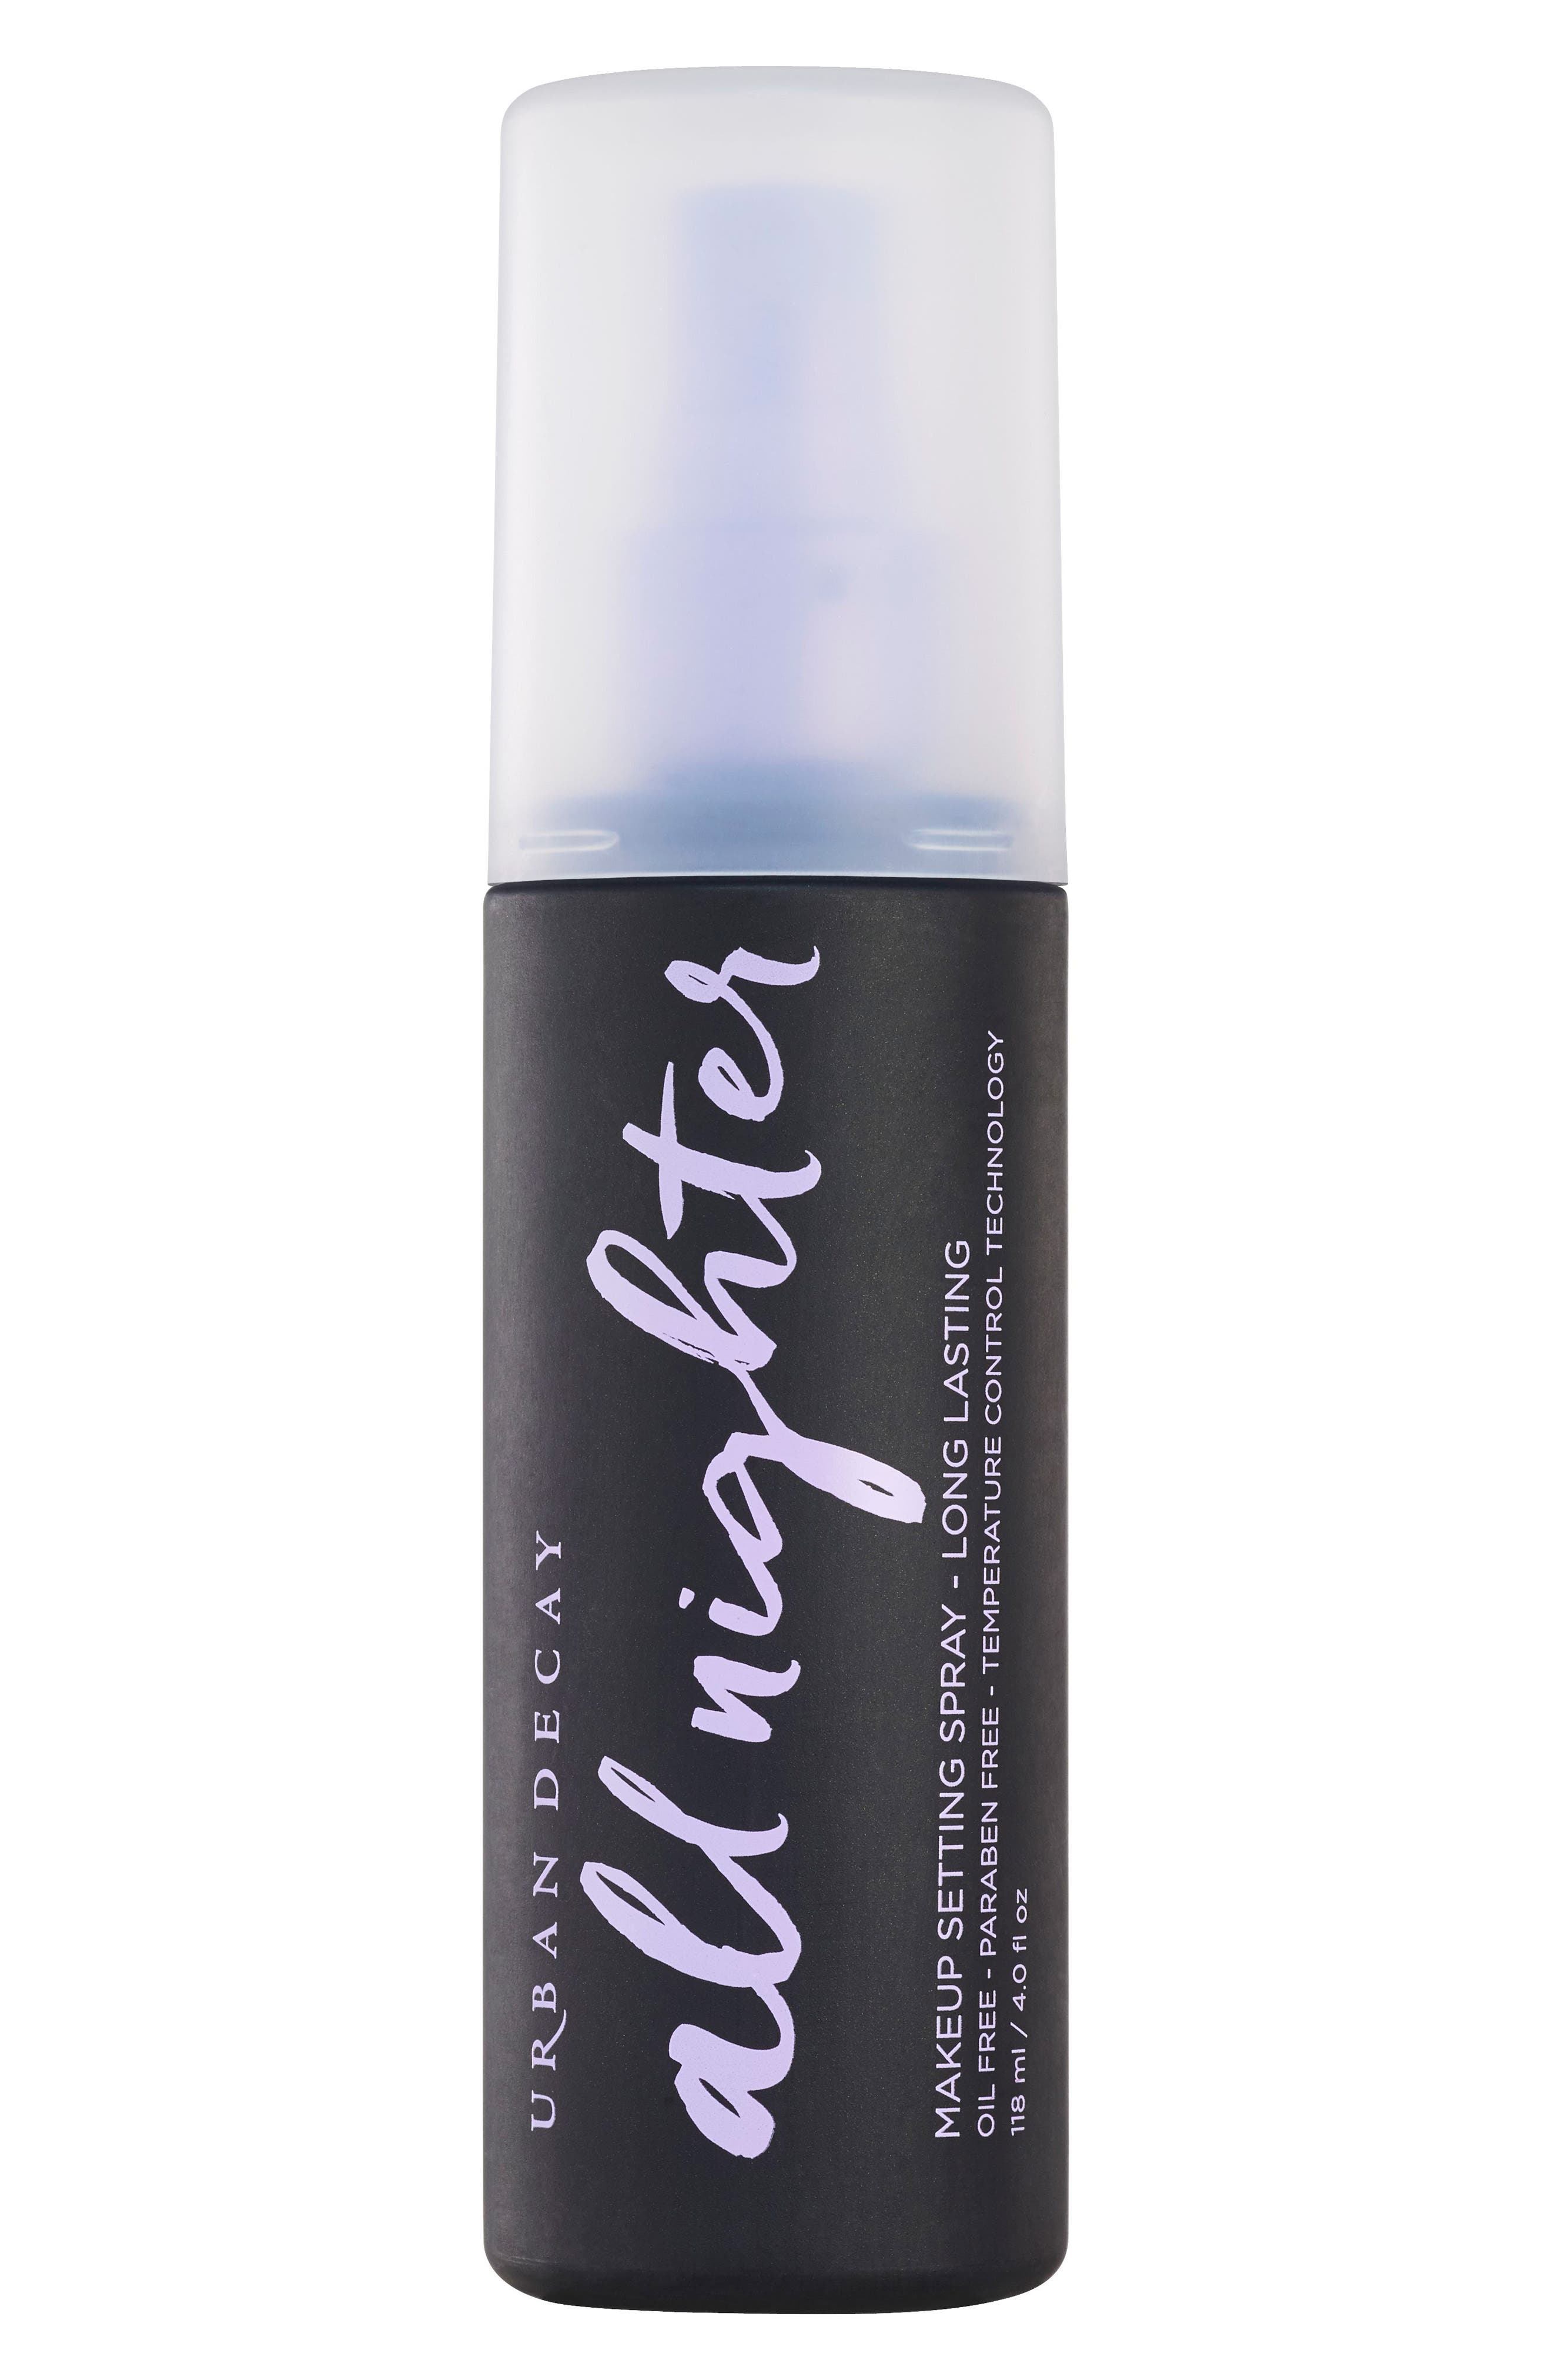 All Nighter Long-Lasting Makeup Setting Spray,                         Main,                         color, No Color